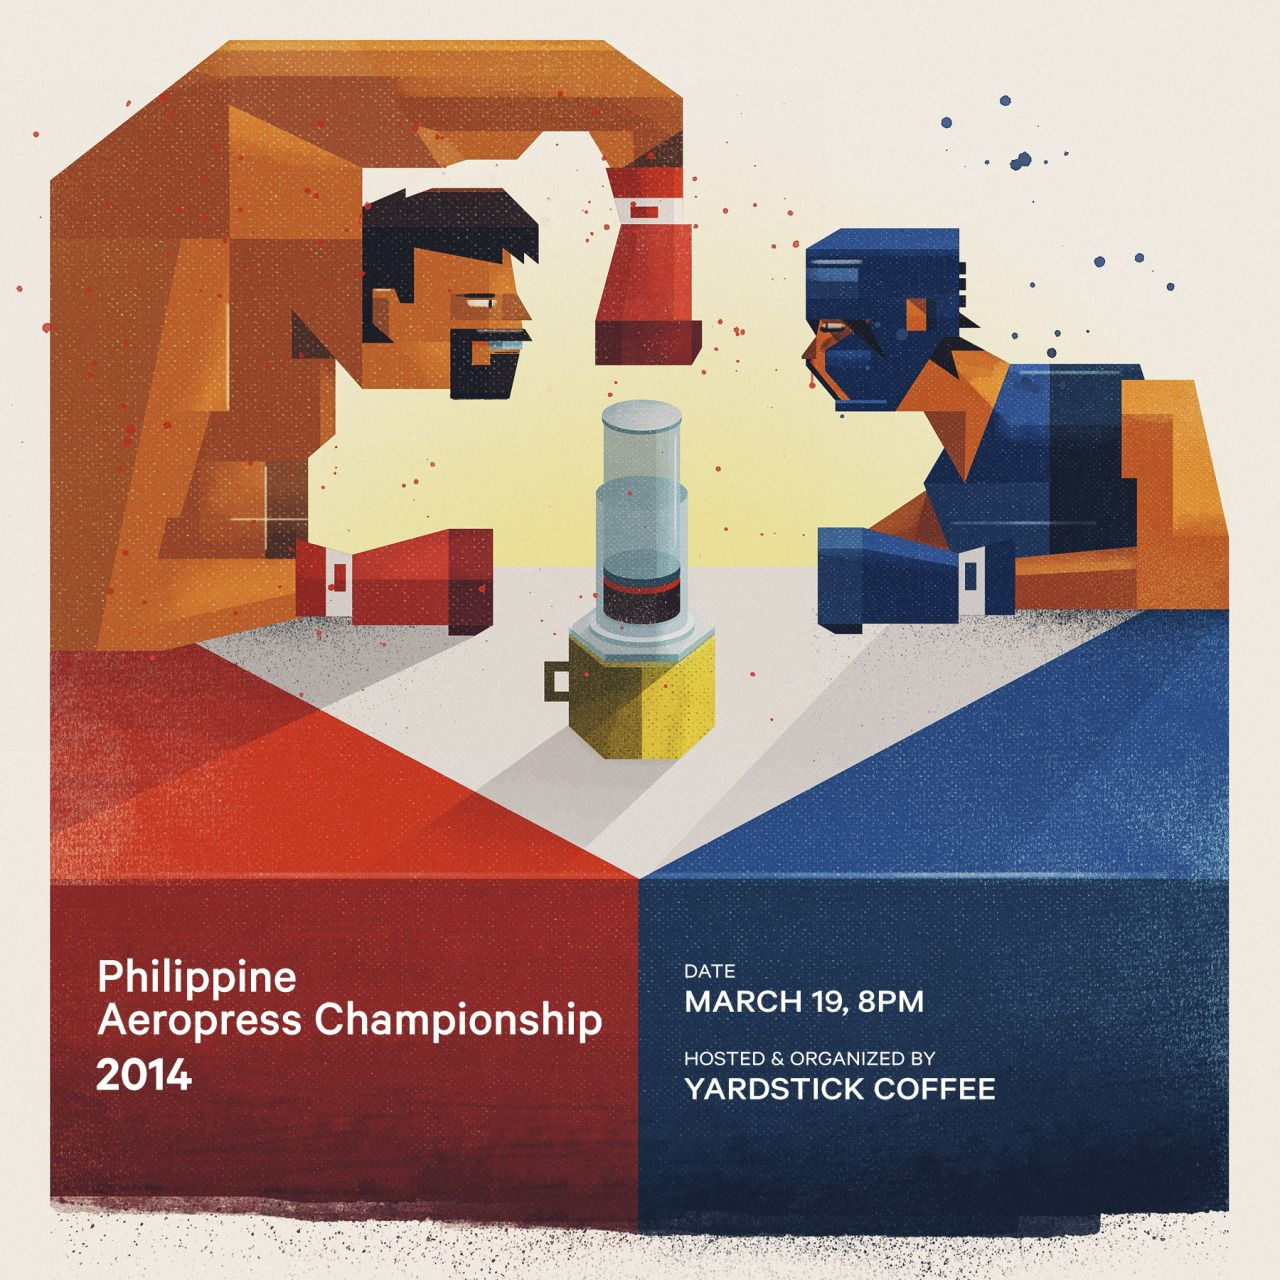 twistedfork:  Epic showdown. :) I made this illustration for the Philippine Aeropress Championship organized by Yardstick Coffee. The idea was to show a pro boxer (red corner) vs an amateur boxer (blue corner) trying to out-press each other, since the competition is open to both professional and home baristas. I also composed them on top of a Philippine-flag table. If you're based here in the Philippines and you want to compete, register now. :)